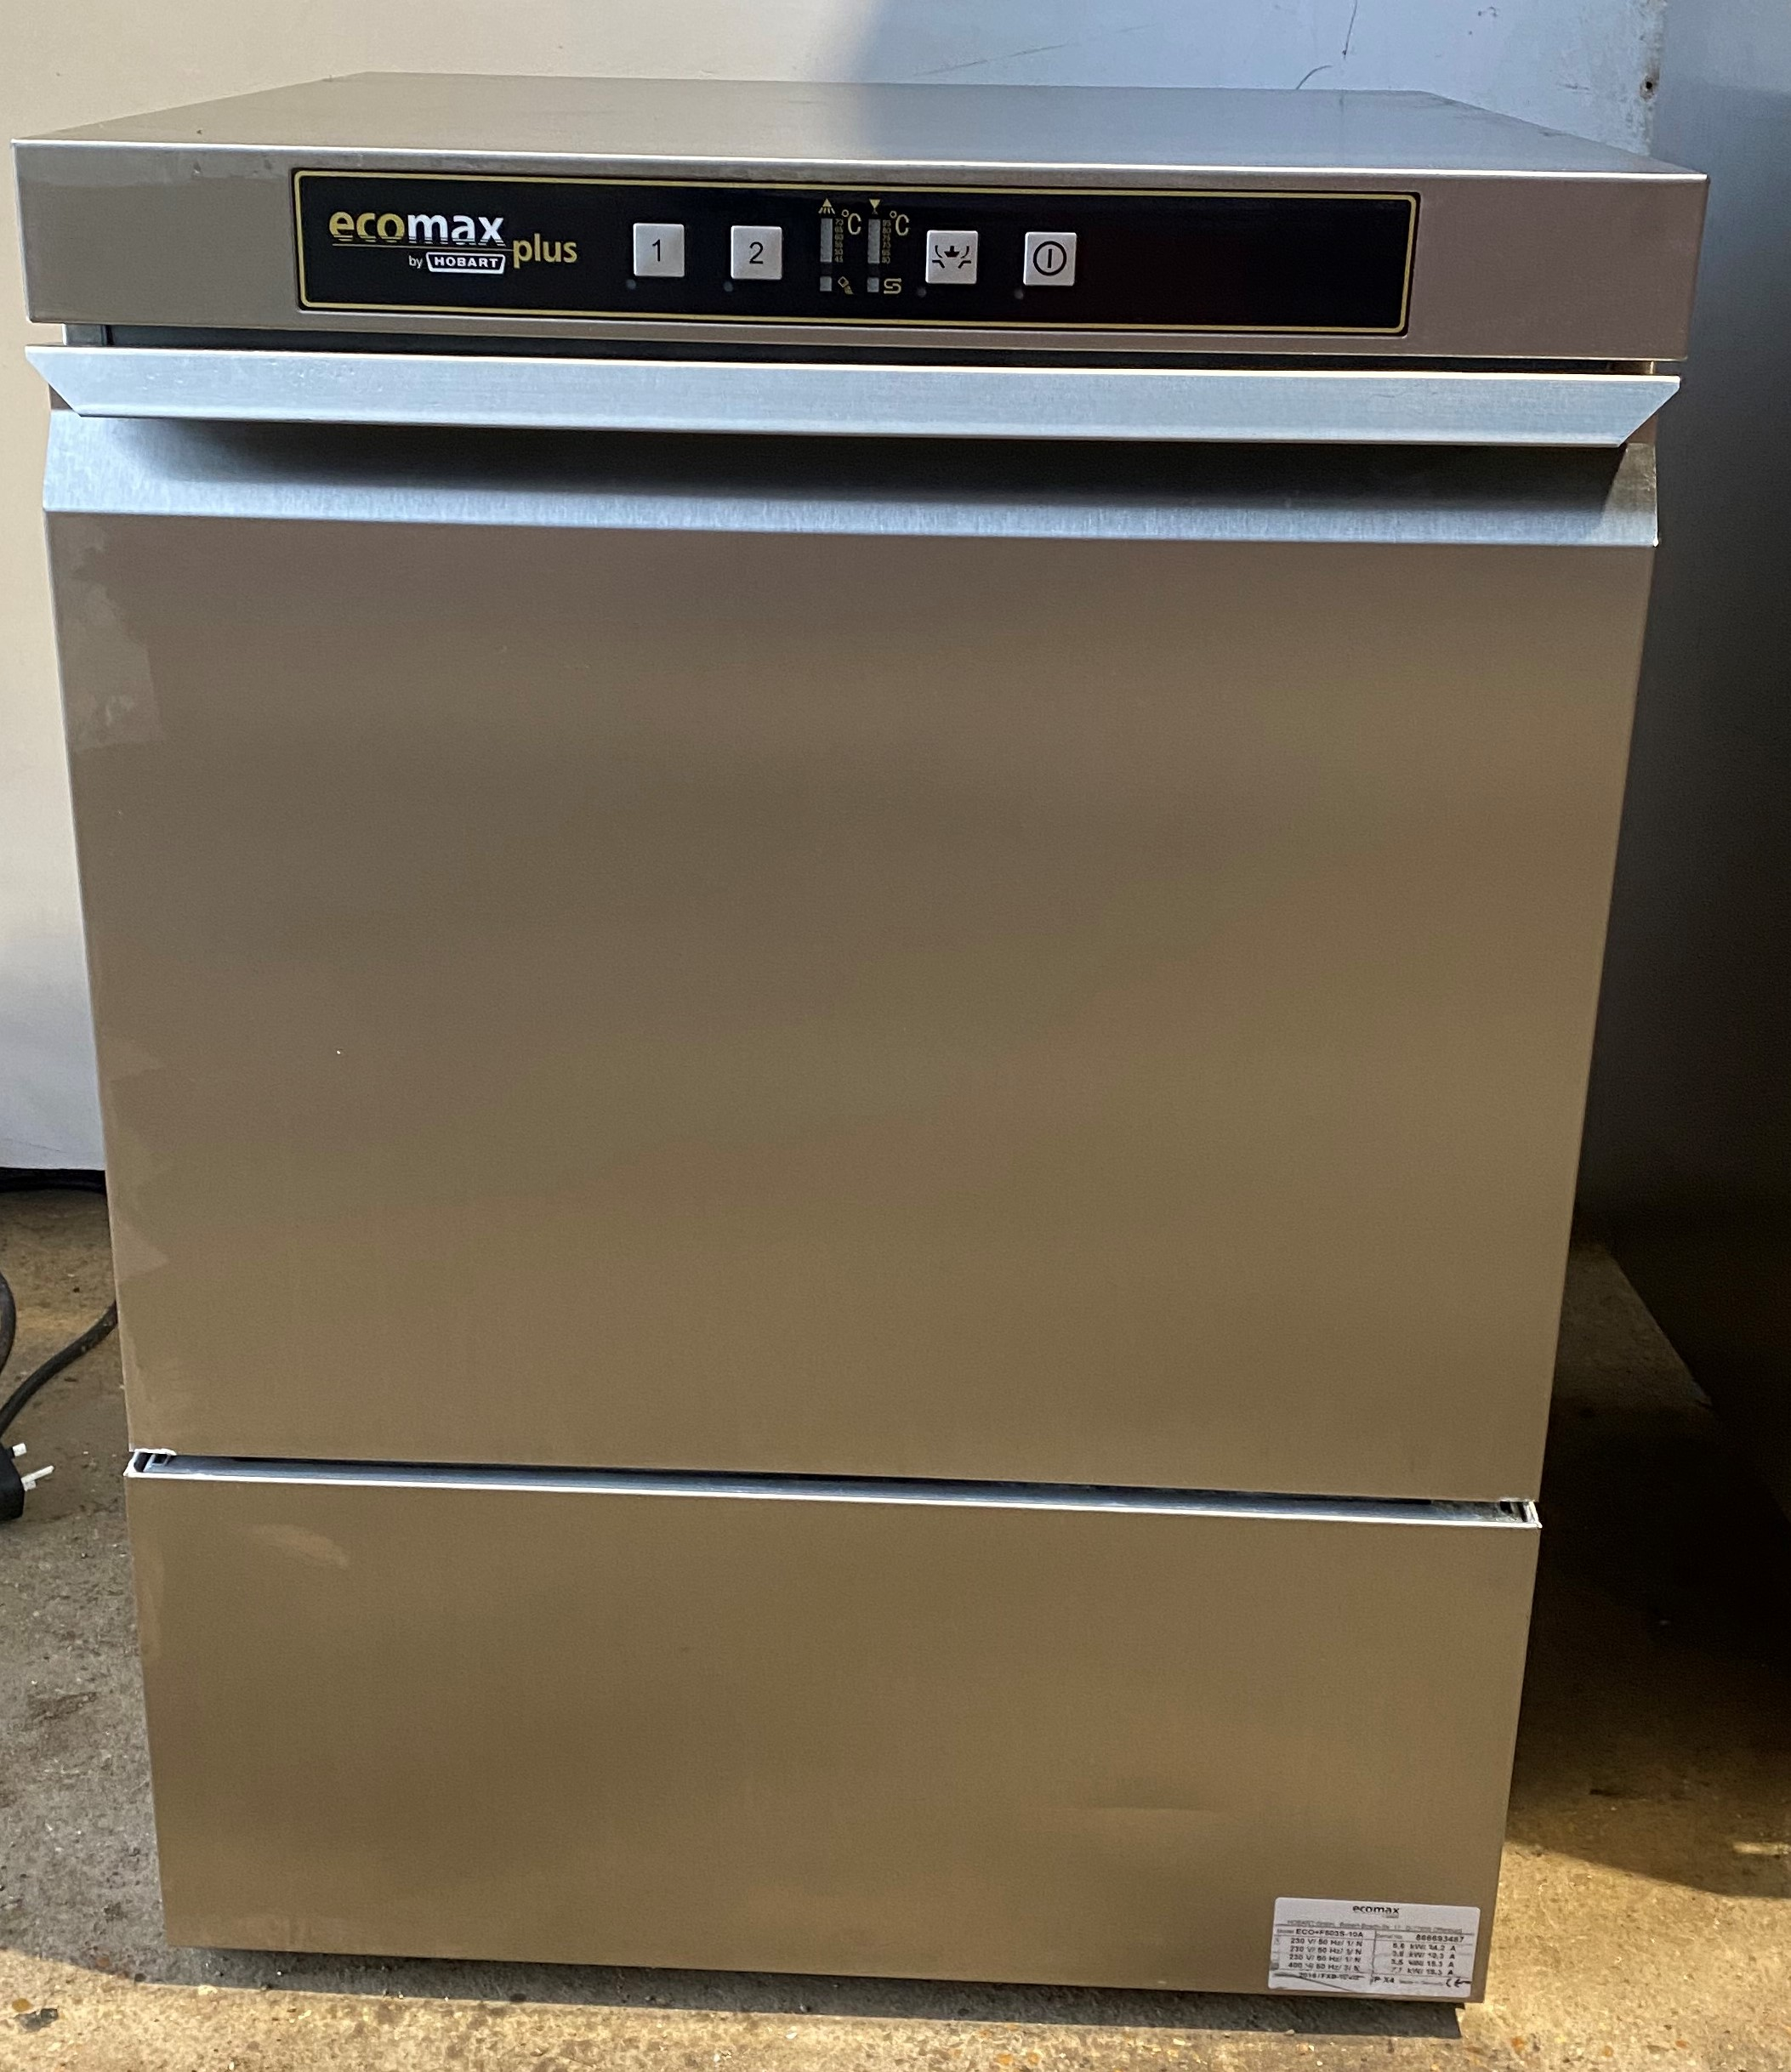 HOBART Ecomax 503S-10A Under Counter Dish Washer – Double rack model!